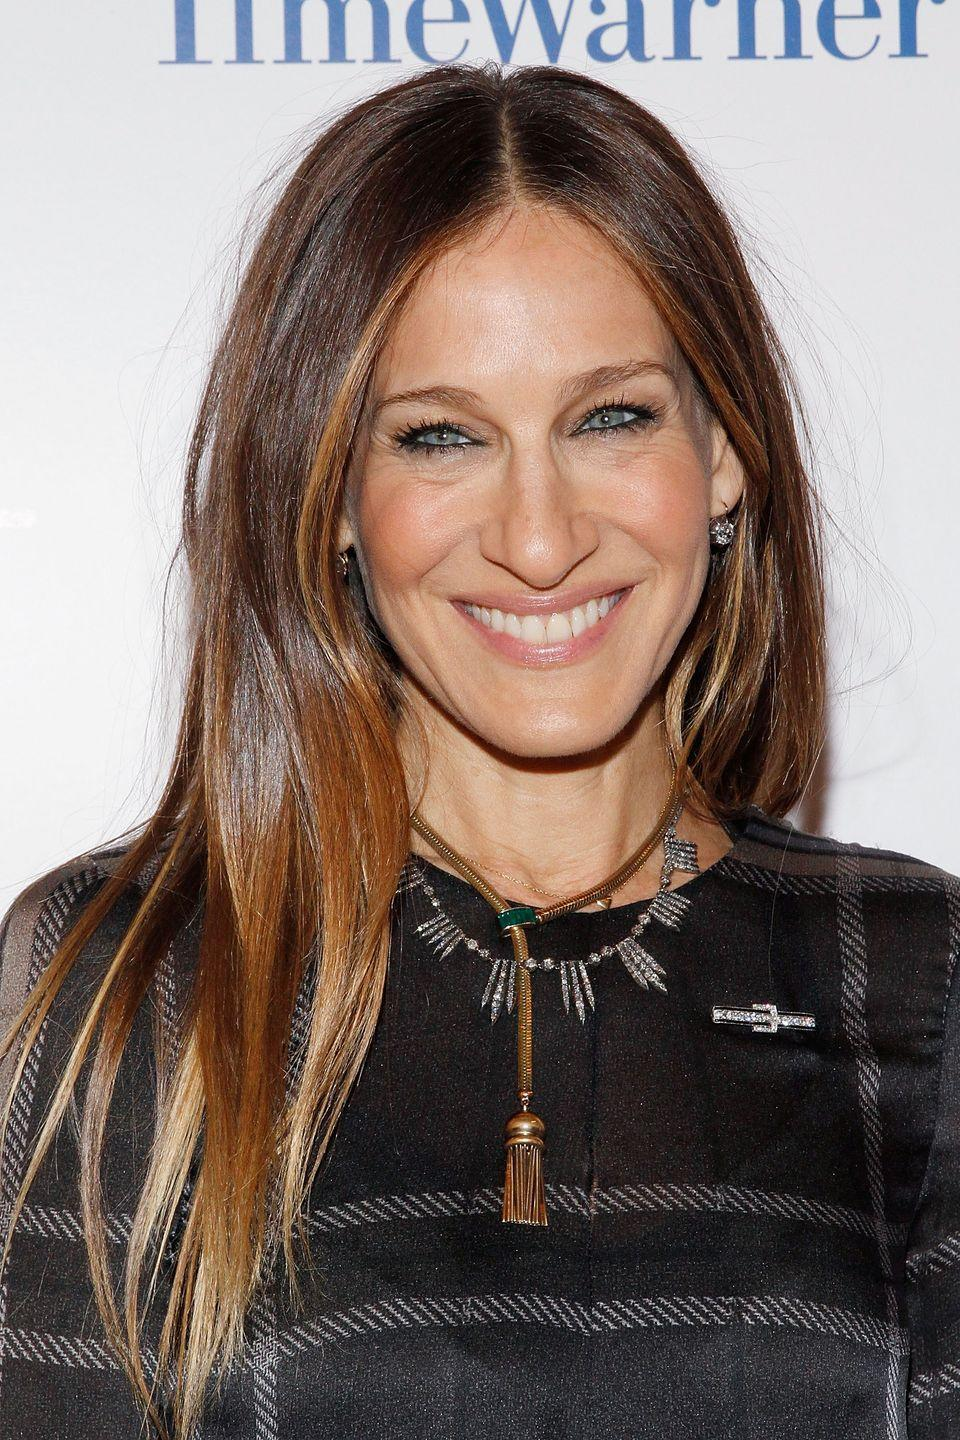 "<p>In a 2016 interview with <em><a href=""http://www.hollywoodreporter.com/rambling-reporter/sarah-jessica-parker-explains-her-no-nudity-stance-943166"" rel=""nofollow noopener"" target=""_blank"" data-ylk=""slk:The Hollywood Reporter"" class=""link rapid-noclick-resp"">The Hollywood Reporter</a></em><span class=""redactor-invisible-space"">,</span><span class=""redactor-invisible-space""> SJP explains her decision not to film any naked scenes throughout the show's six-season run: ""I've always had one, and it's apropos of absolutely nothing. Some people have a perks list and they are legendary. They have to have white candles in their room. I don't have a crazy list like that. I've just always had [a no-nudity clause].""</span></p>"